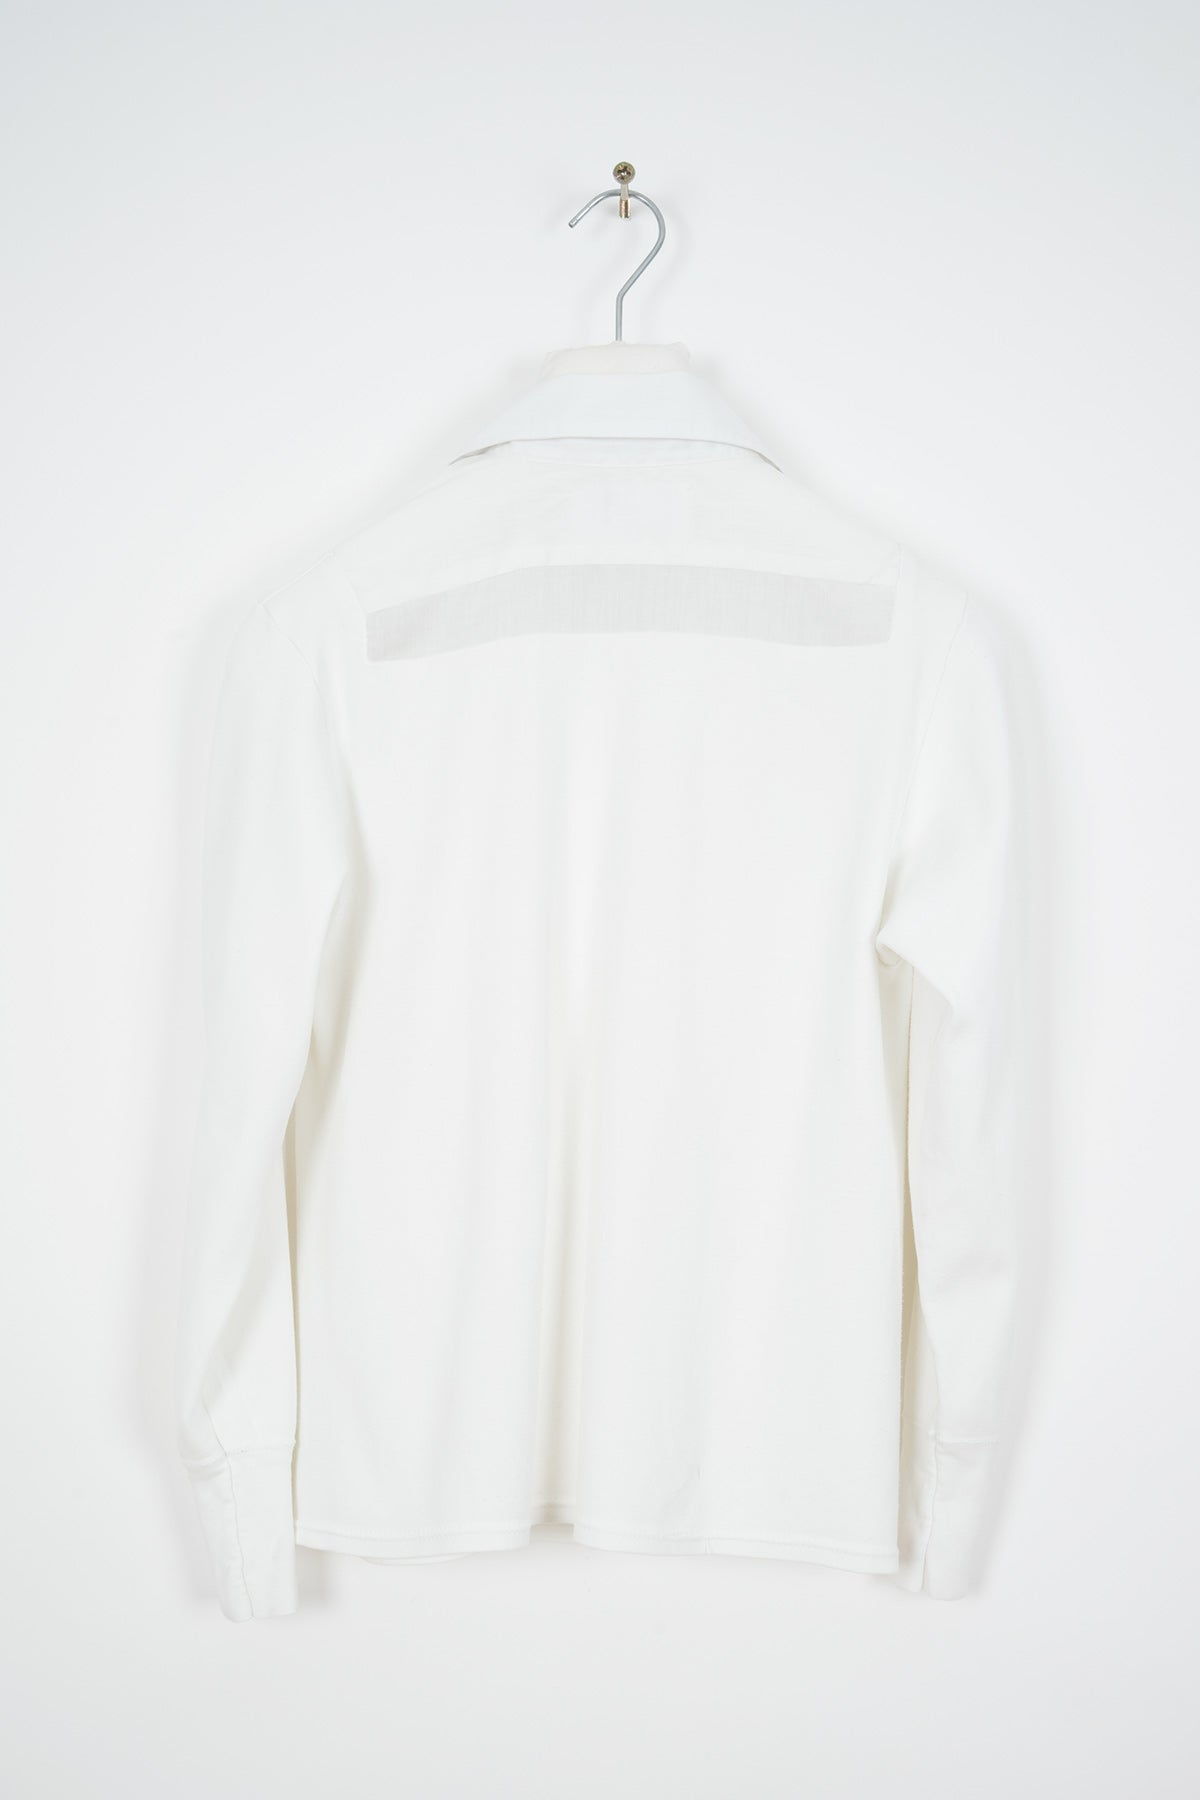 2003 S/S ARTISANAL TUXEDO SHIRT INLAYED INTO COTTON TOP